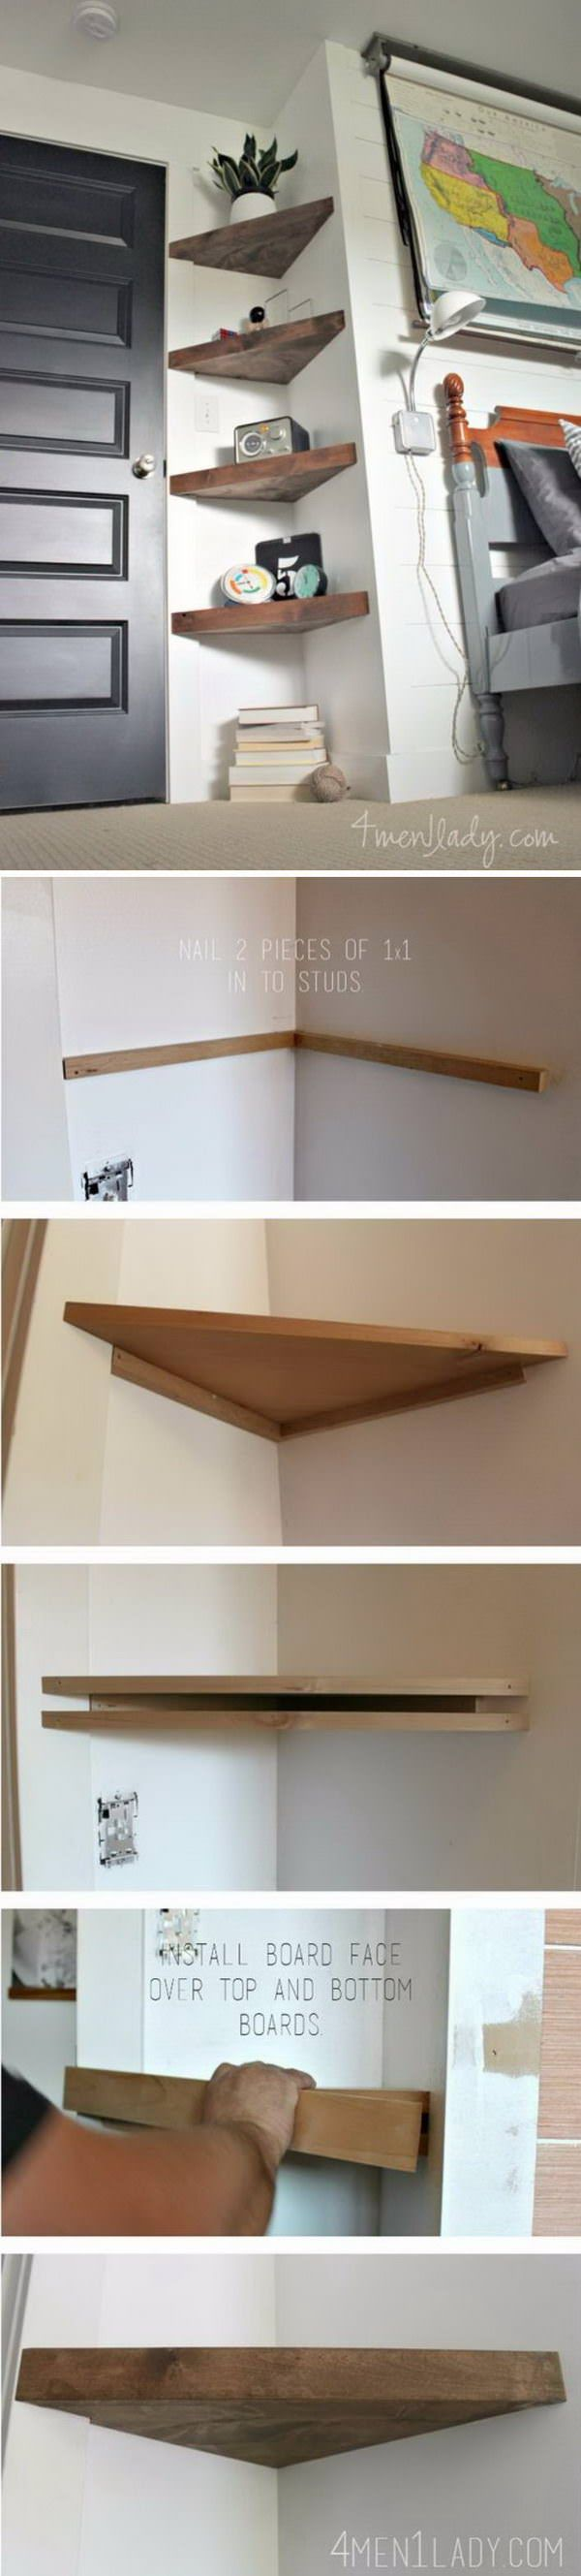 best 25+ diy corner shelf ideas on pinterest | corner shelf